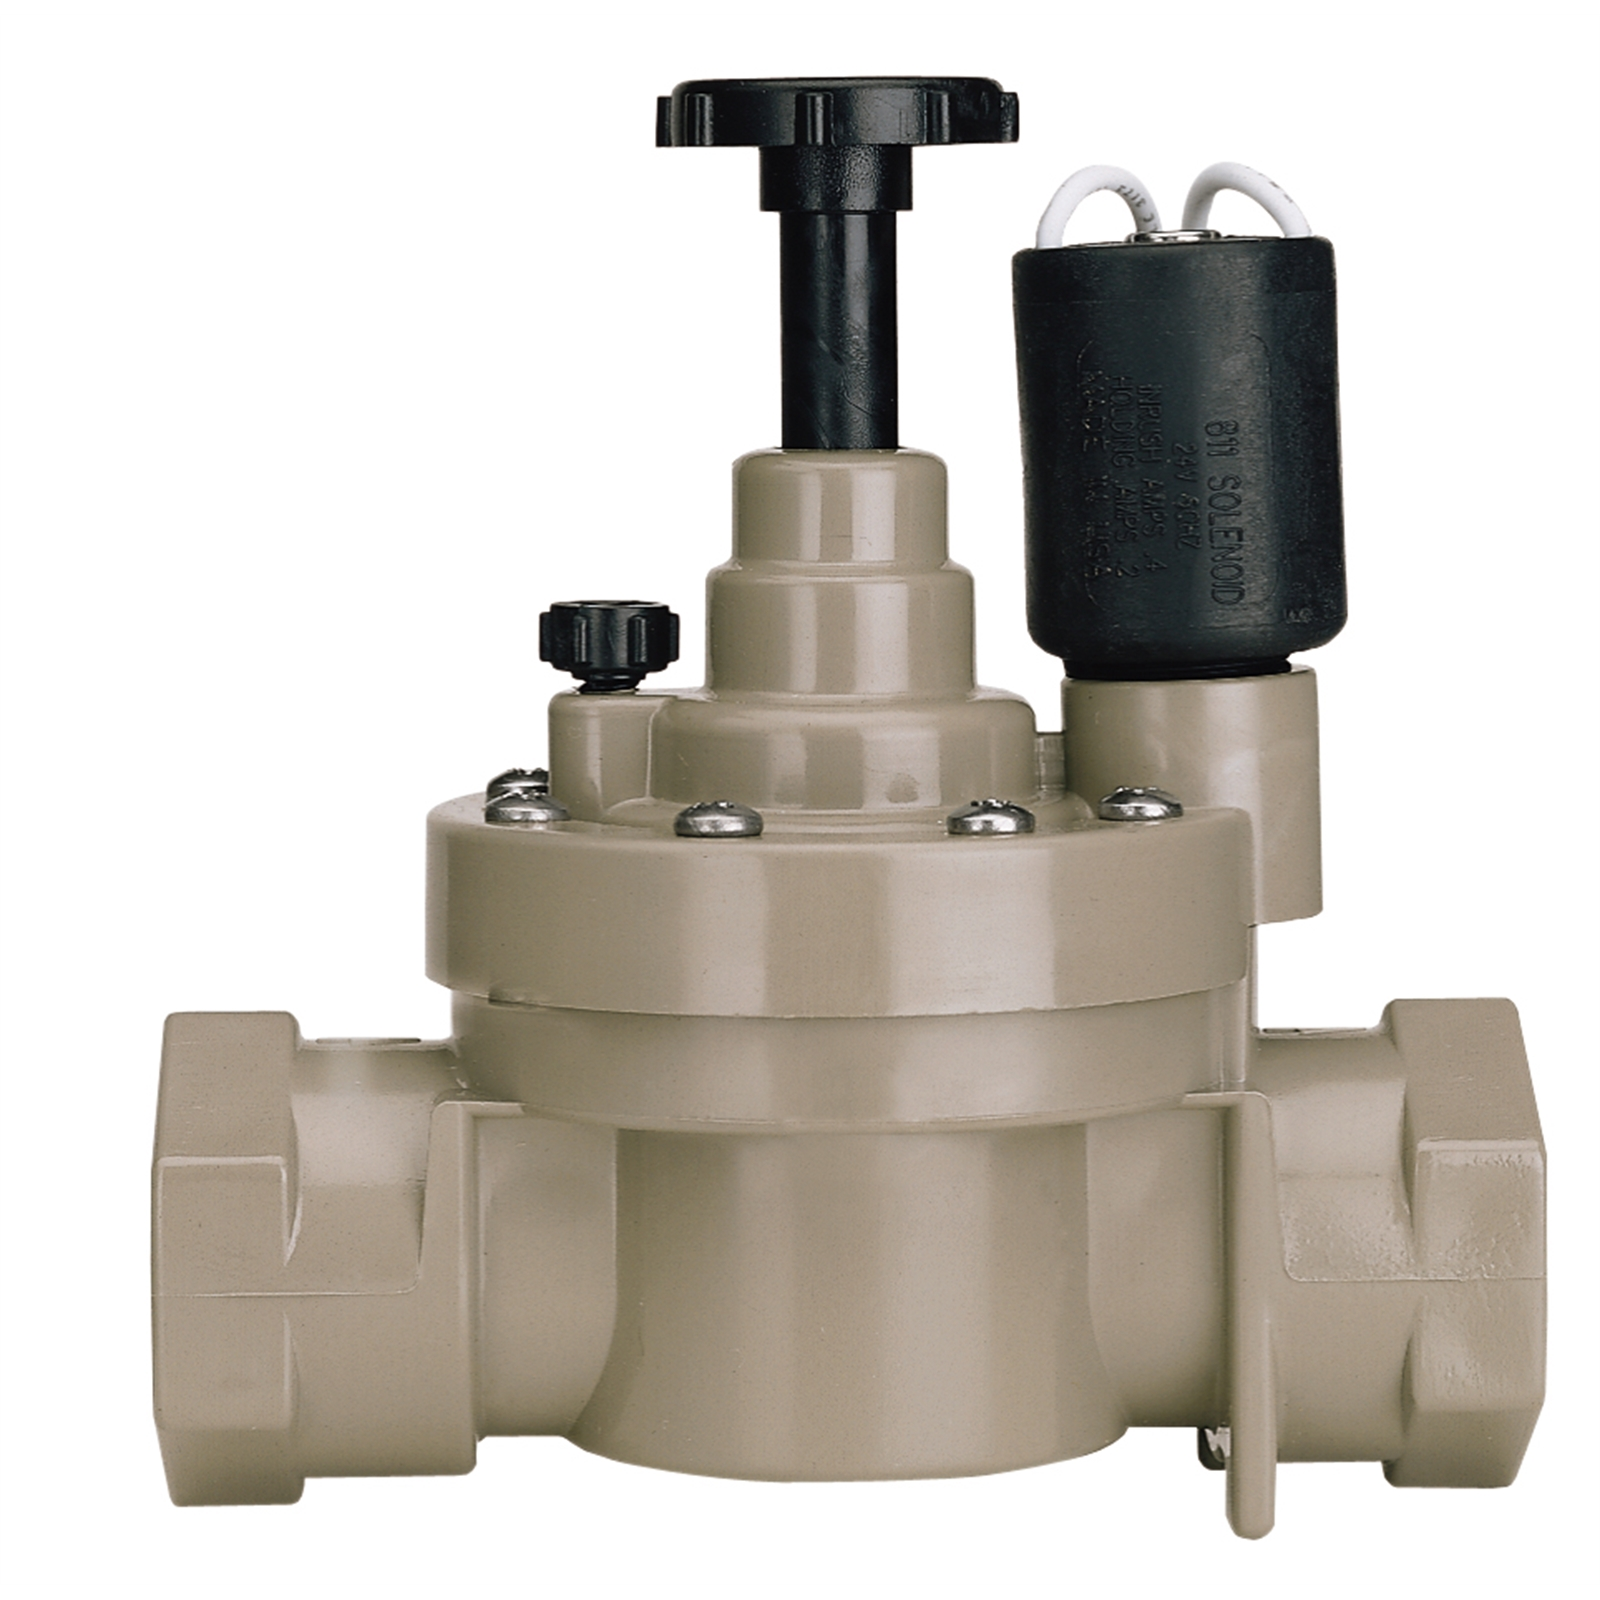 Pope 25mm Solenoid Valve with Flow Control